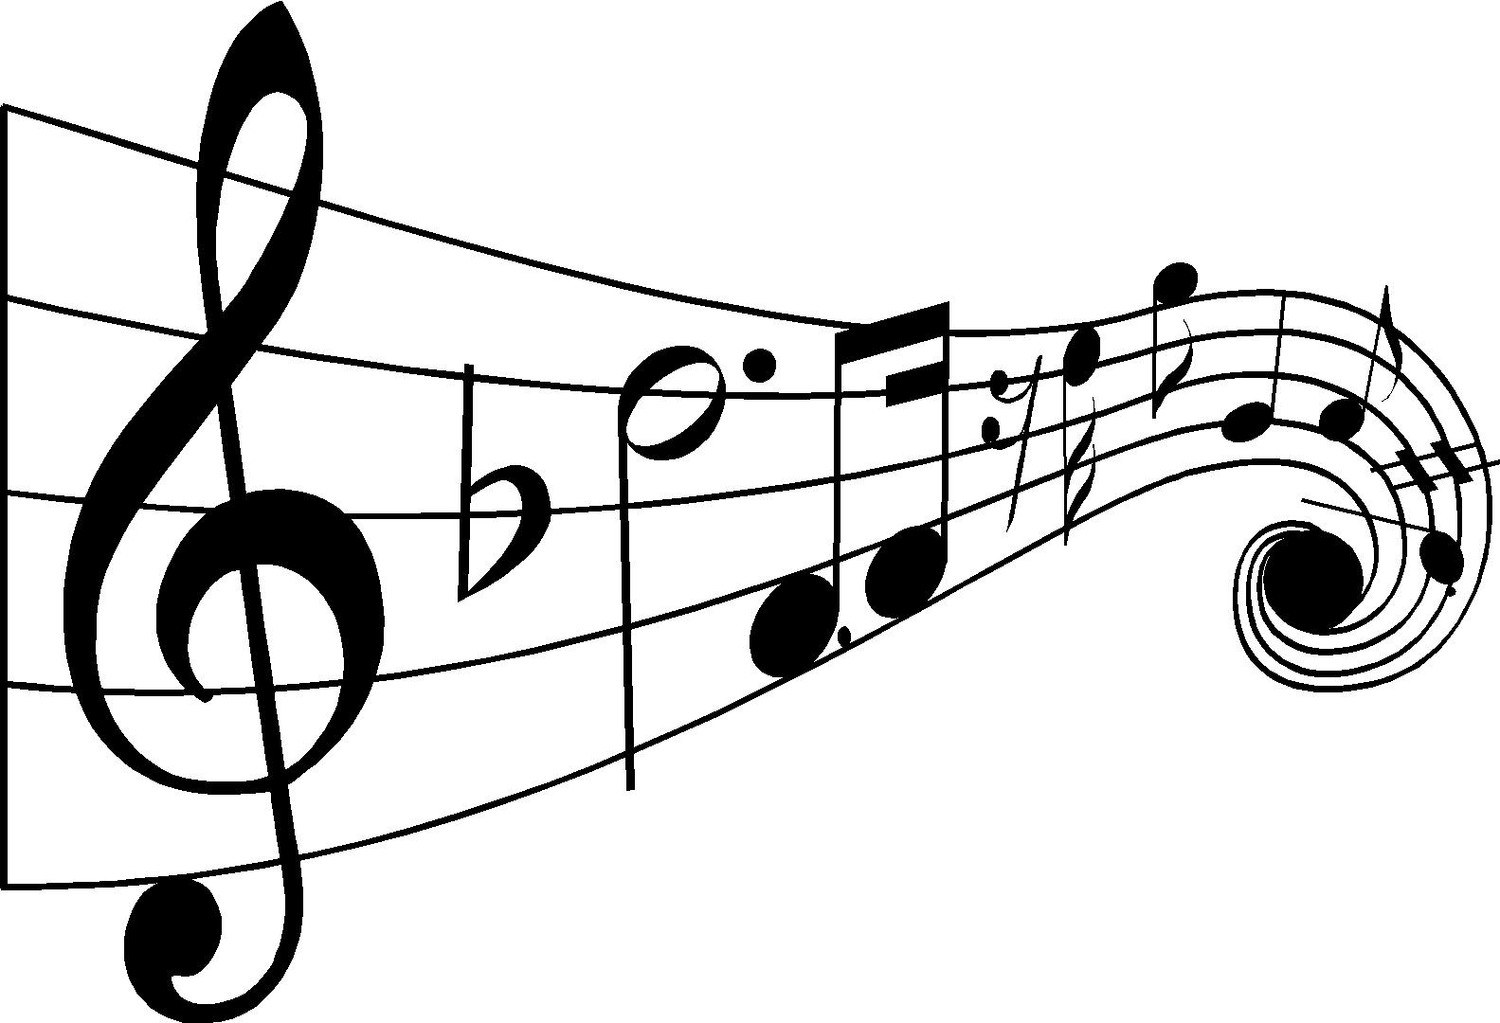 Music note notes clip art pandacute